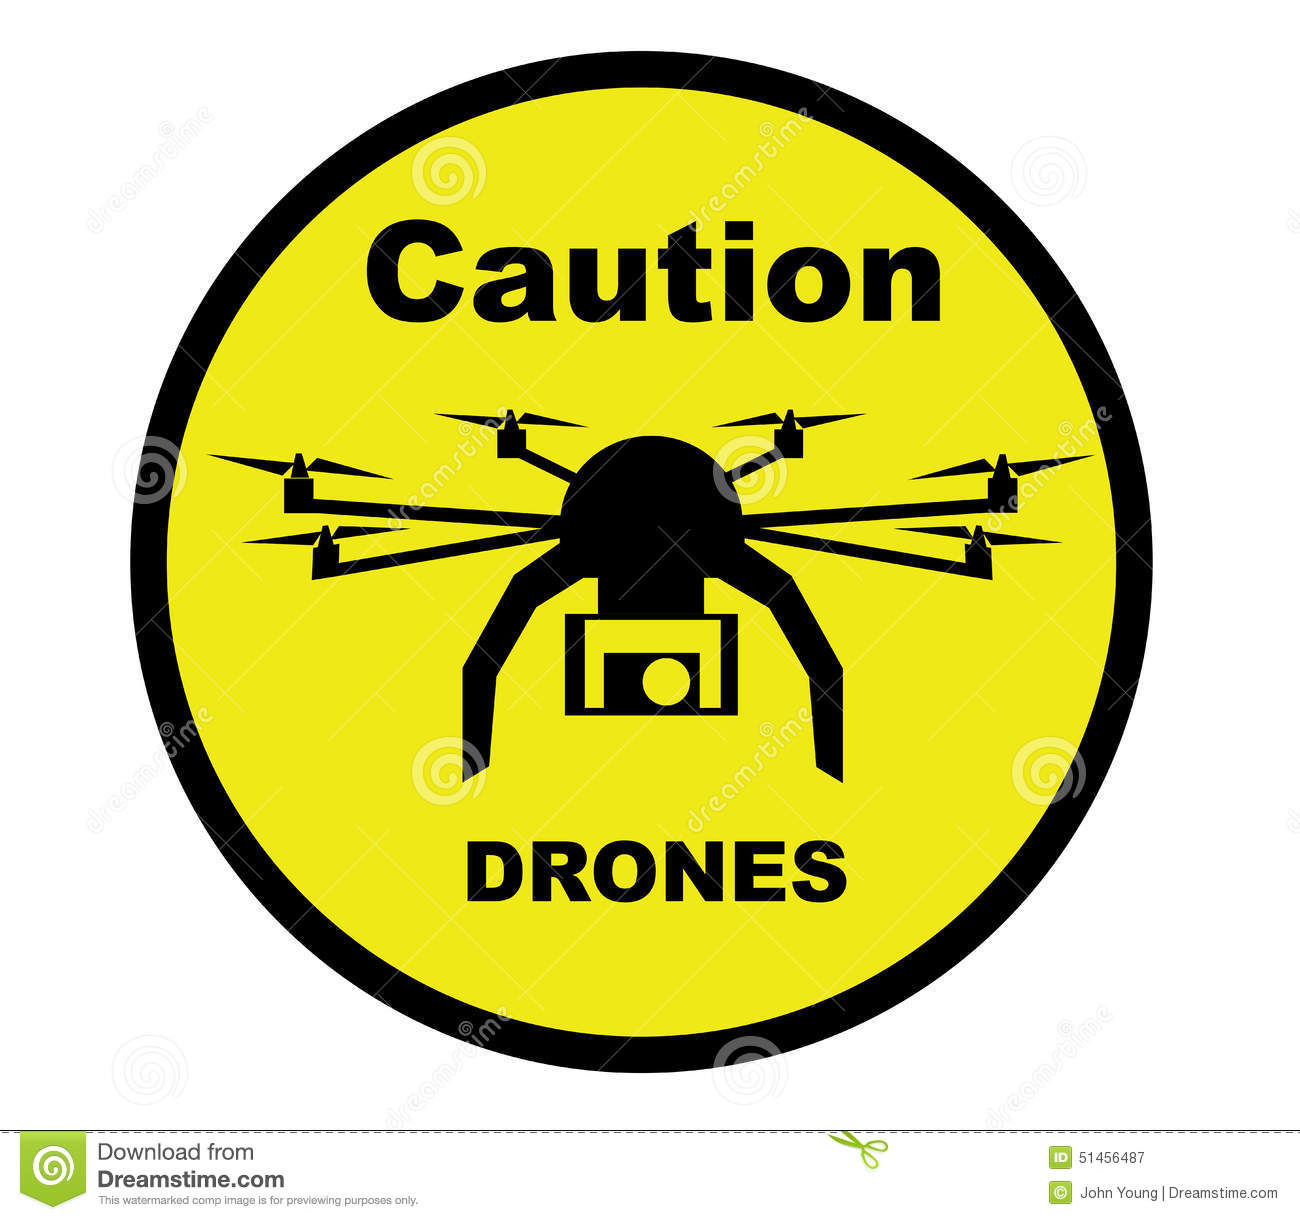 quadcopter drone with camera with Stock Illustration Caution Drone Warning Sign Aircraft Worlds Drones Image51456487 on WLtoys Q242 G 5 8G FPV 60377759511 as well 2 Axis Gopro Session Stabilized Gimbal For Eachine 250 furthermore 371000 besides Dji Releases The Phantom 4 Drone With Obstacle Avoidance Active Tracking And Improved Camera furthermore U Fly Lily Clone Camera Wifi Fpv Quadcopter.